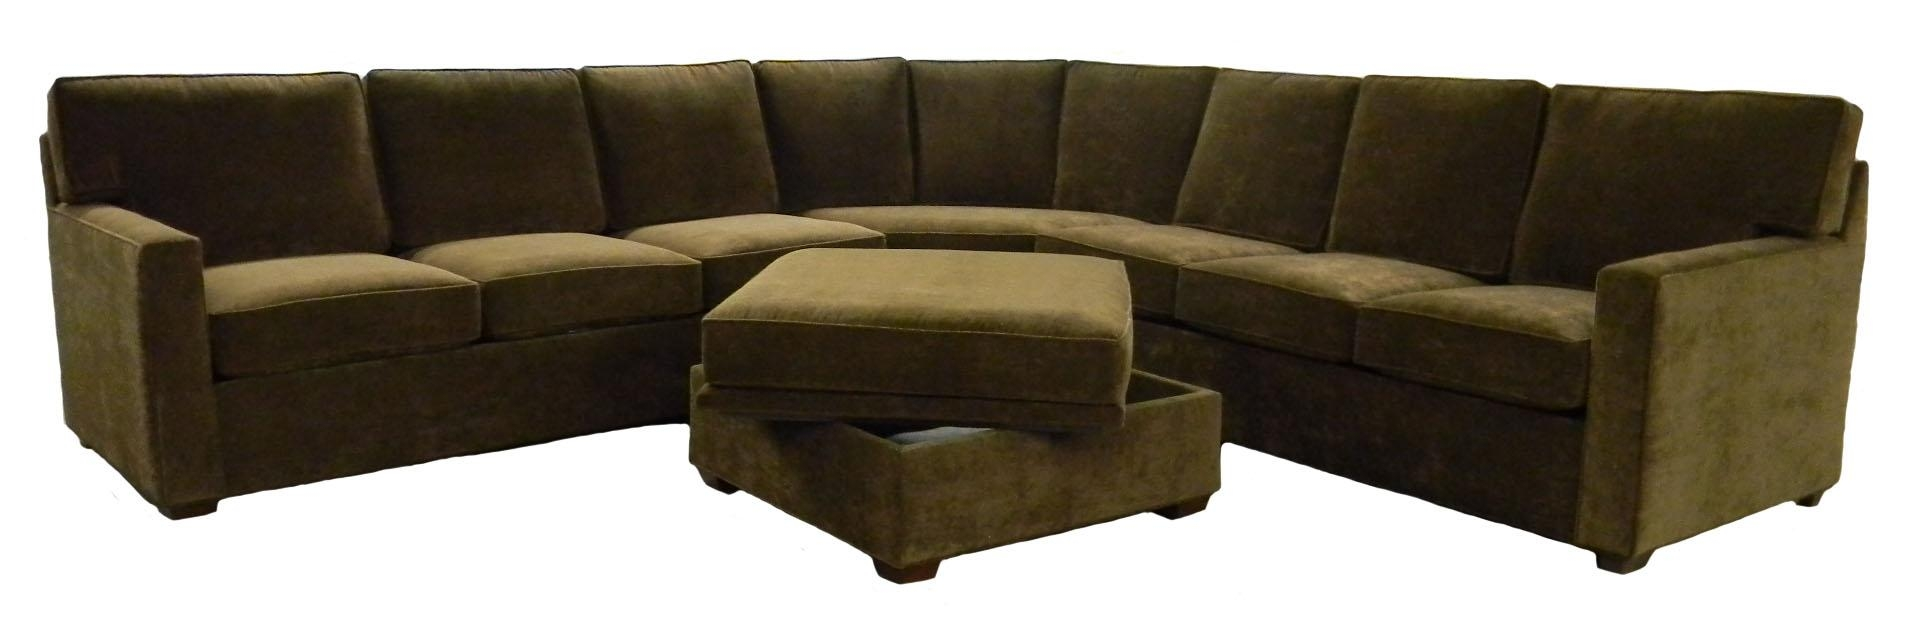 Sofas Center : Excellent Green Sectional Sofa Photos Inspirations Throughout Green Sectional Sofa With Chaise (View 13 of 15)